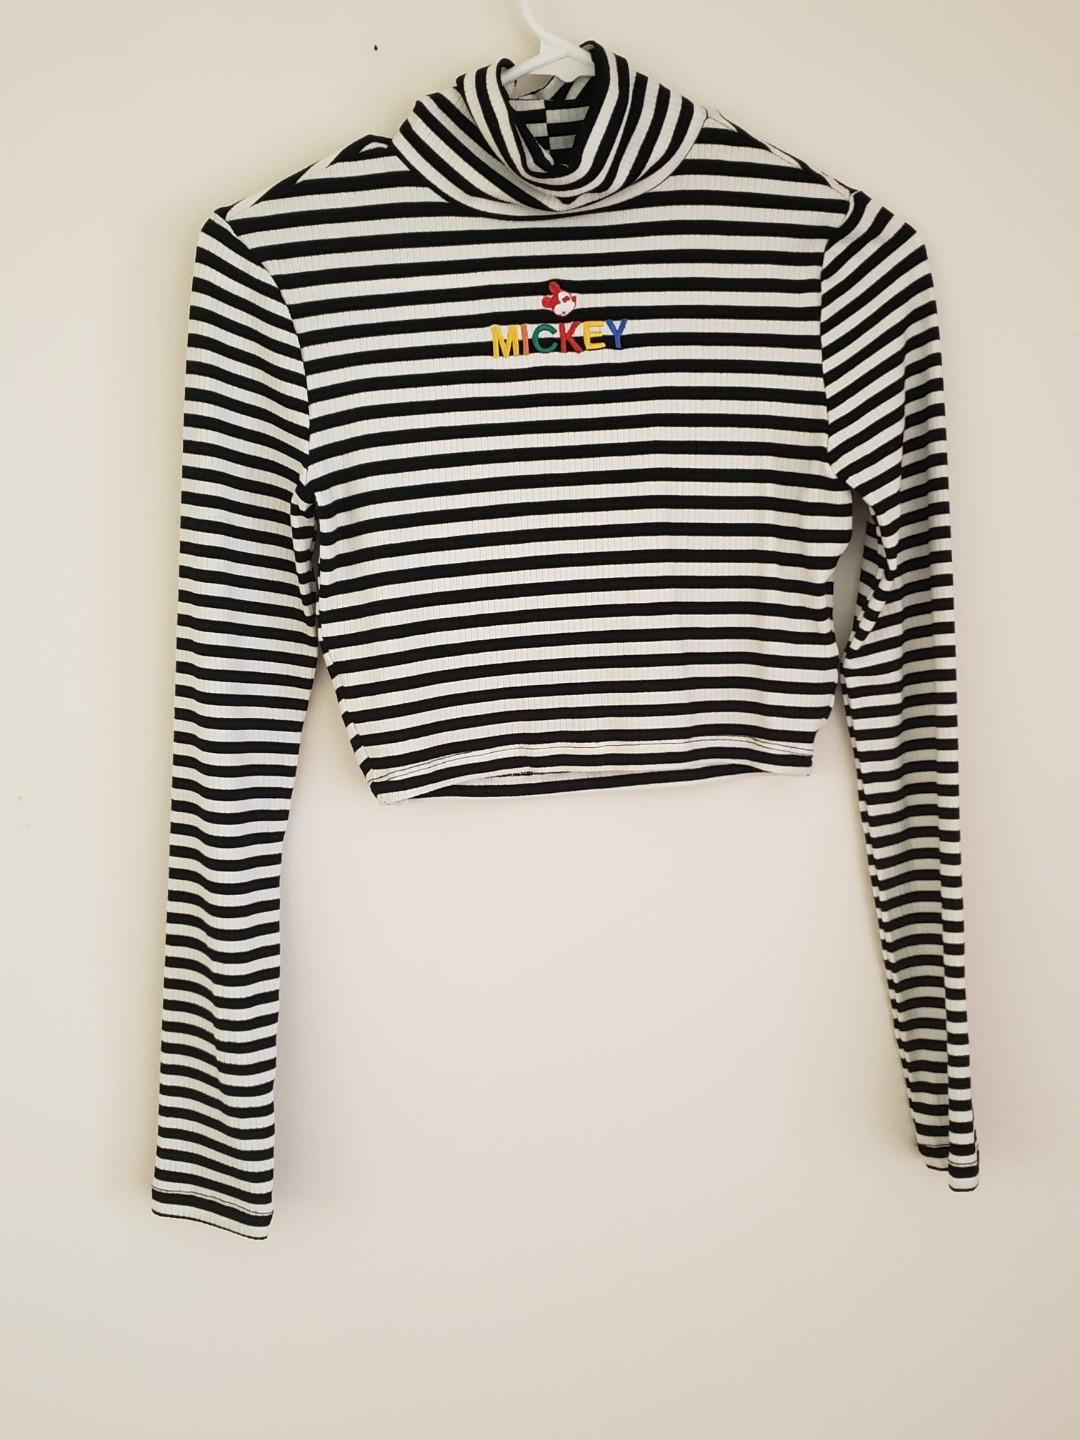 Black and White Striped Crop Top w/ Mickey